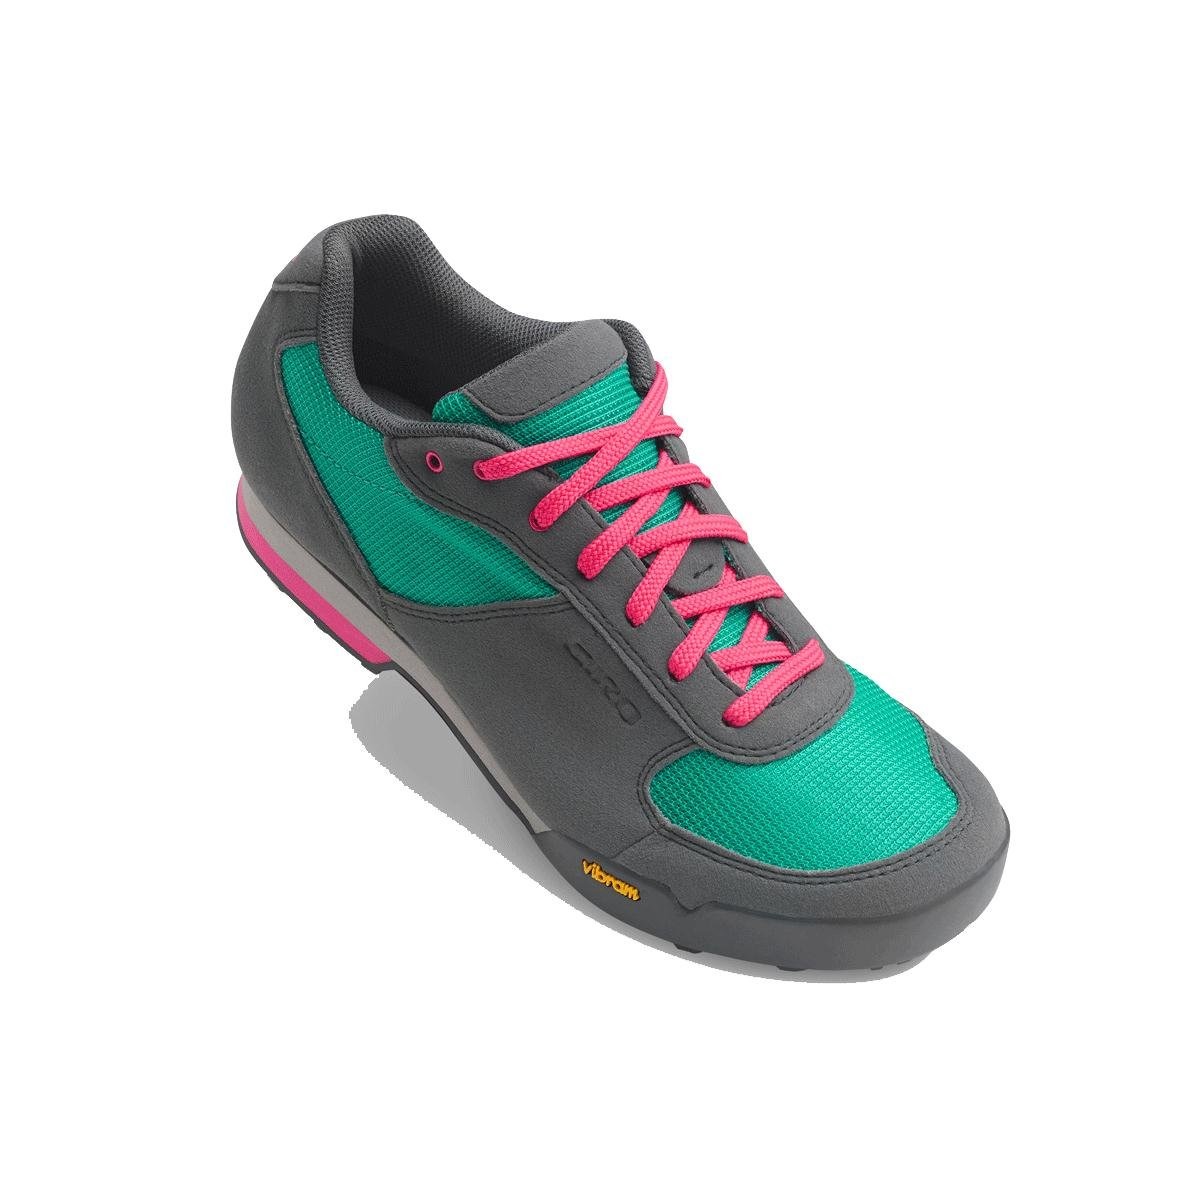 Giro 2017 Womens Petra VR Dirt Cycling Shoes B01LWIDAEK 39|Turquoise/Bright Pink